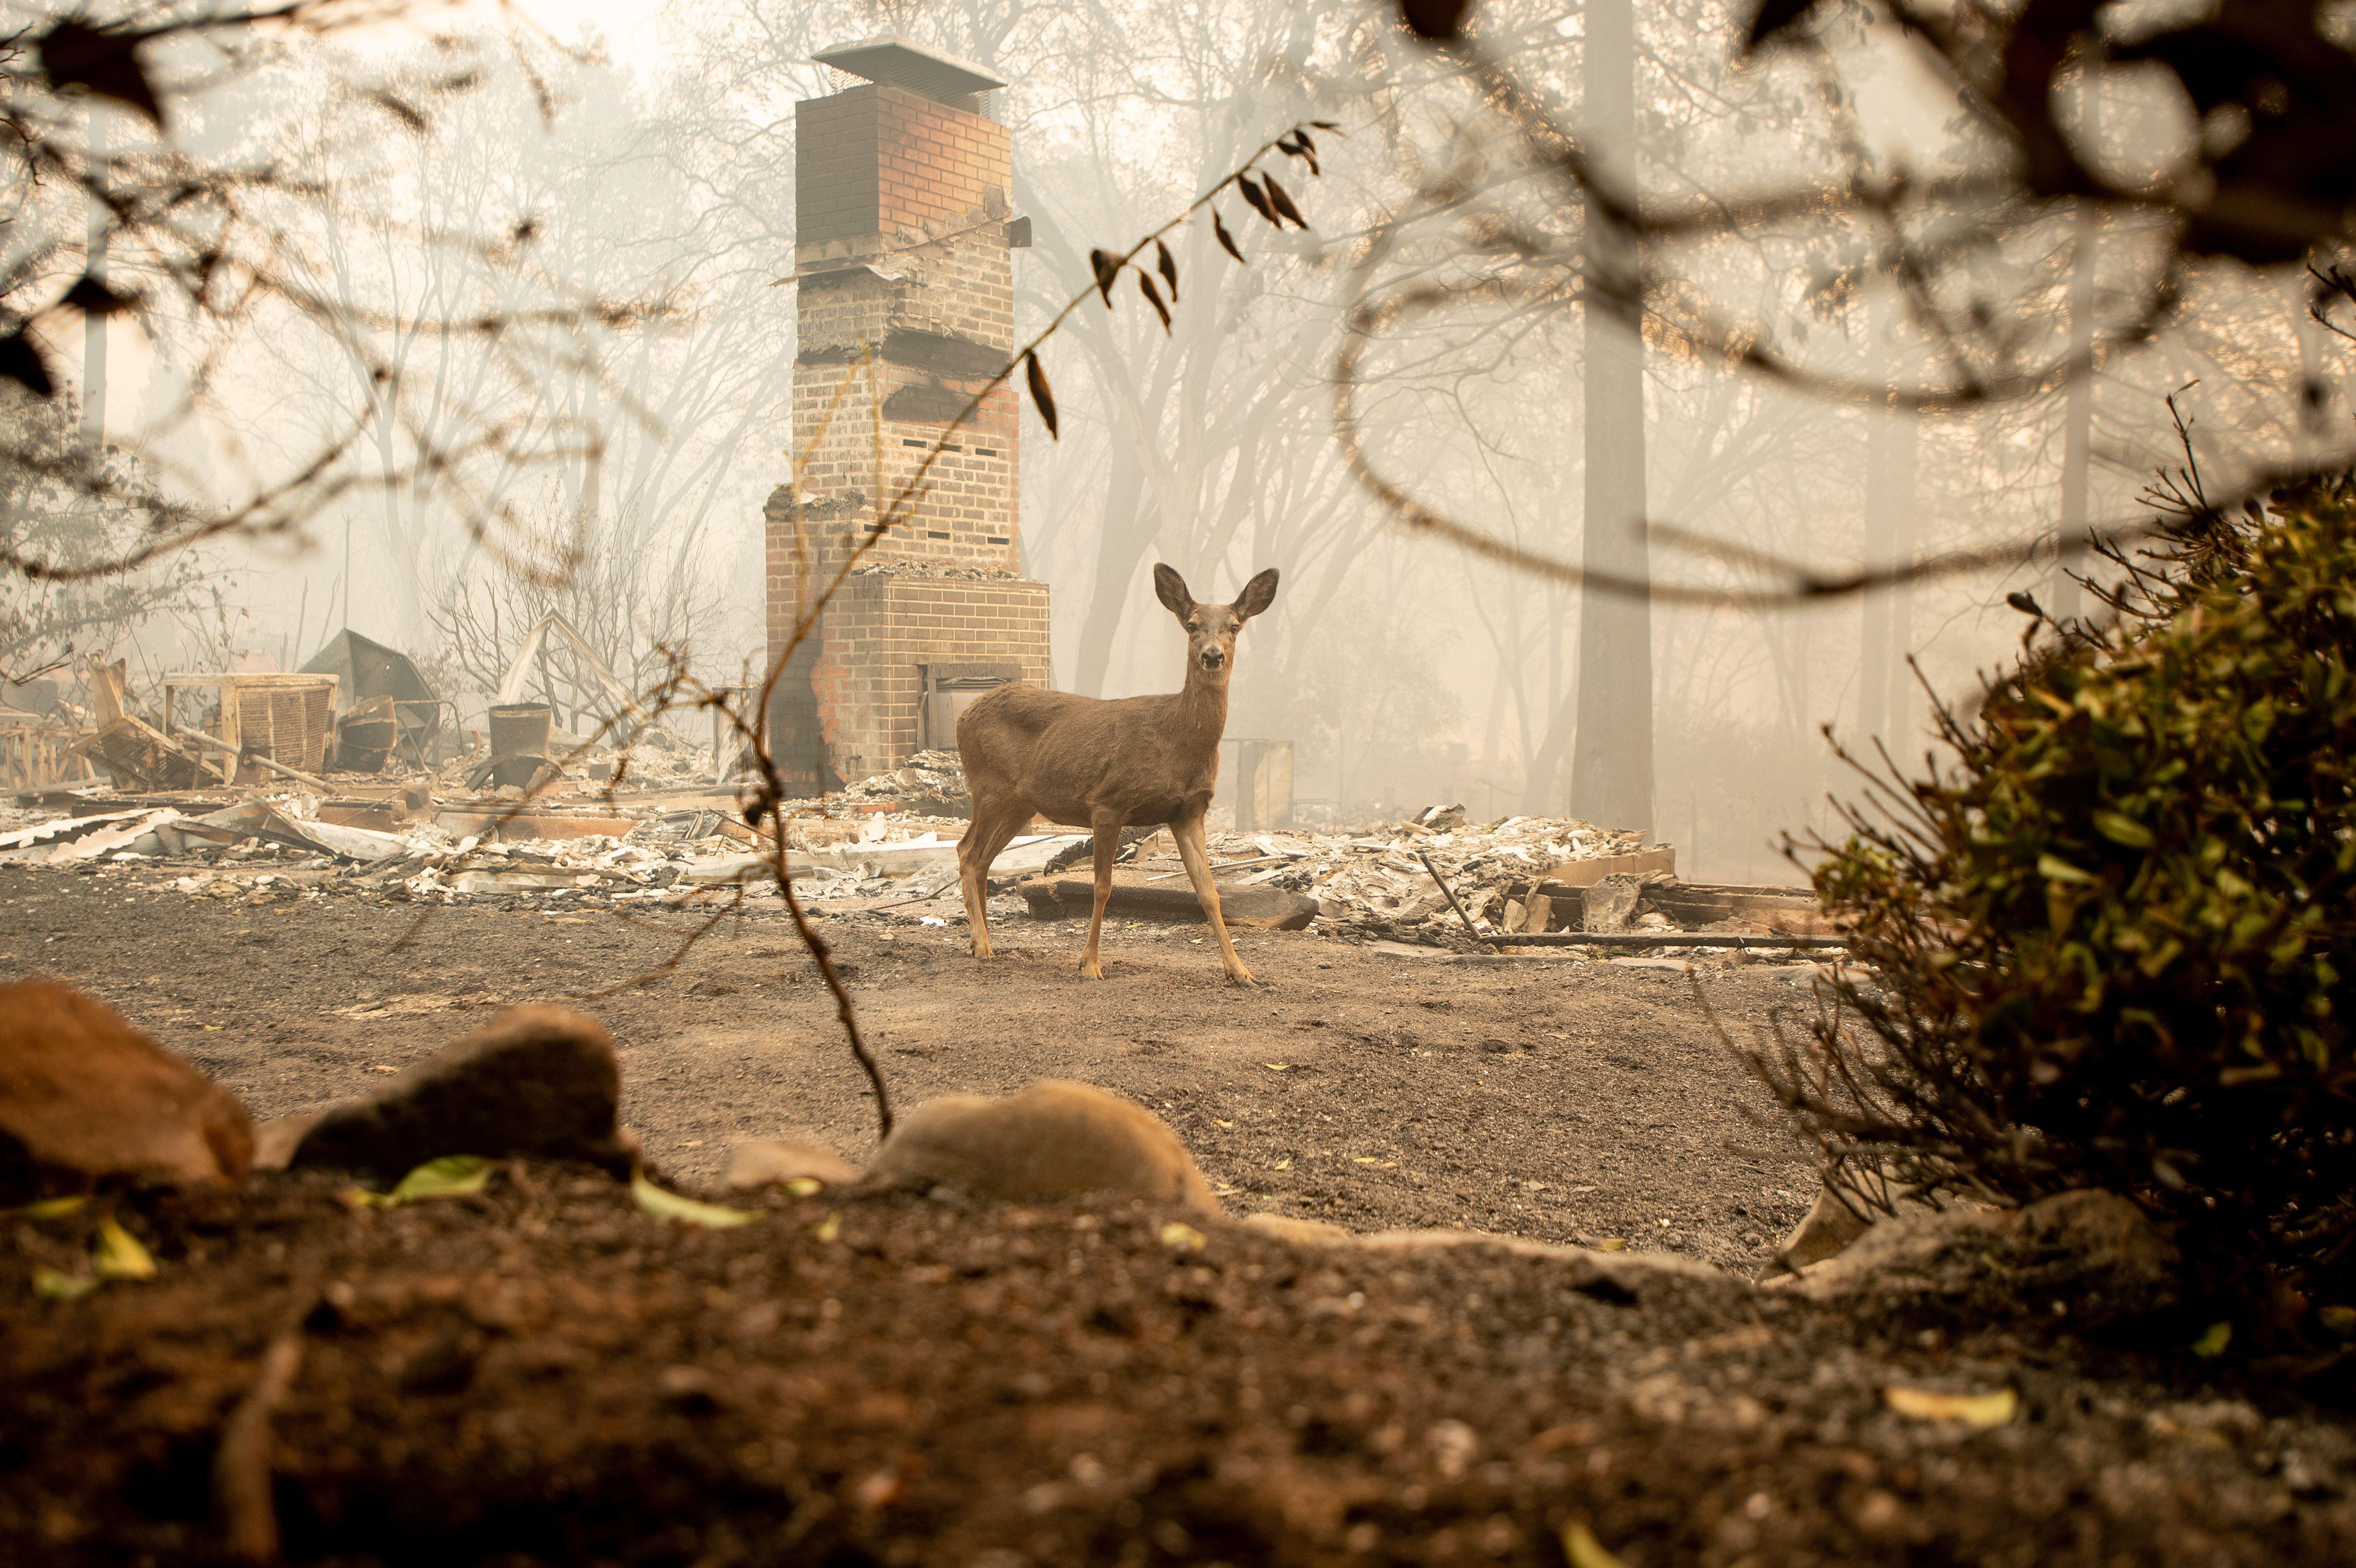 A deer looks on from a residence burned by the Camp Fire.